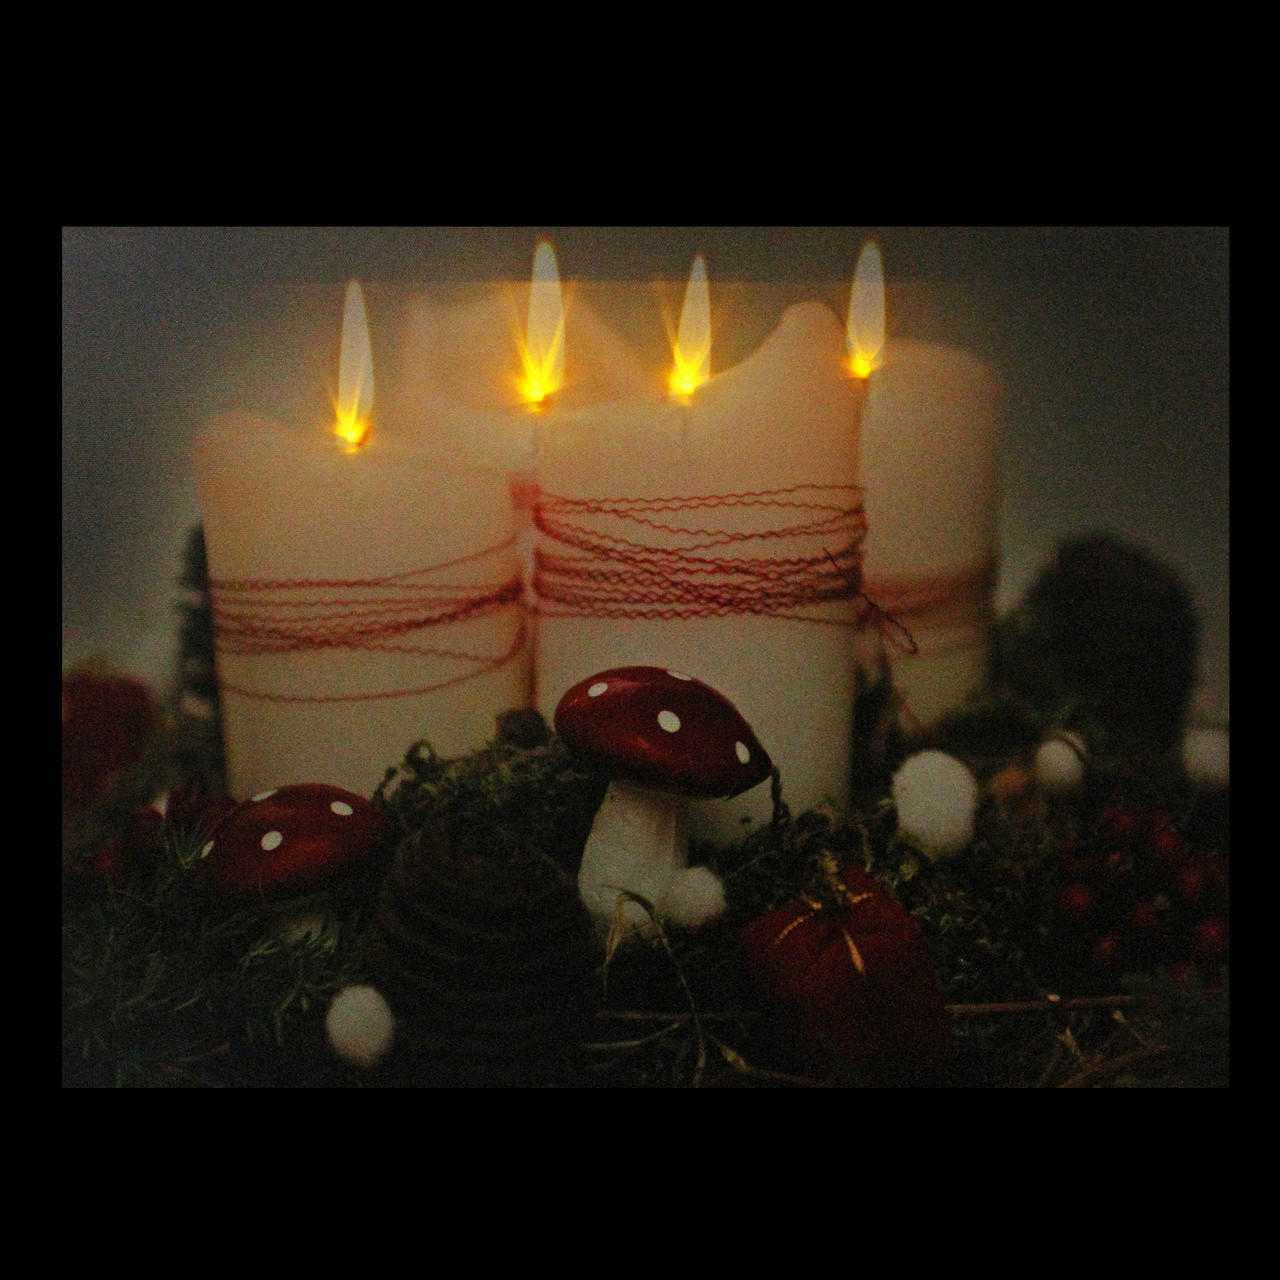 led lighted flickering holiday candles christmas canvas wall art 1175 x 1575 31533448 - Lighted Christmas Wall Decorations